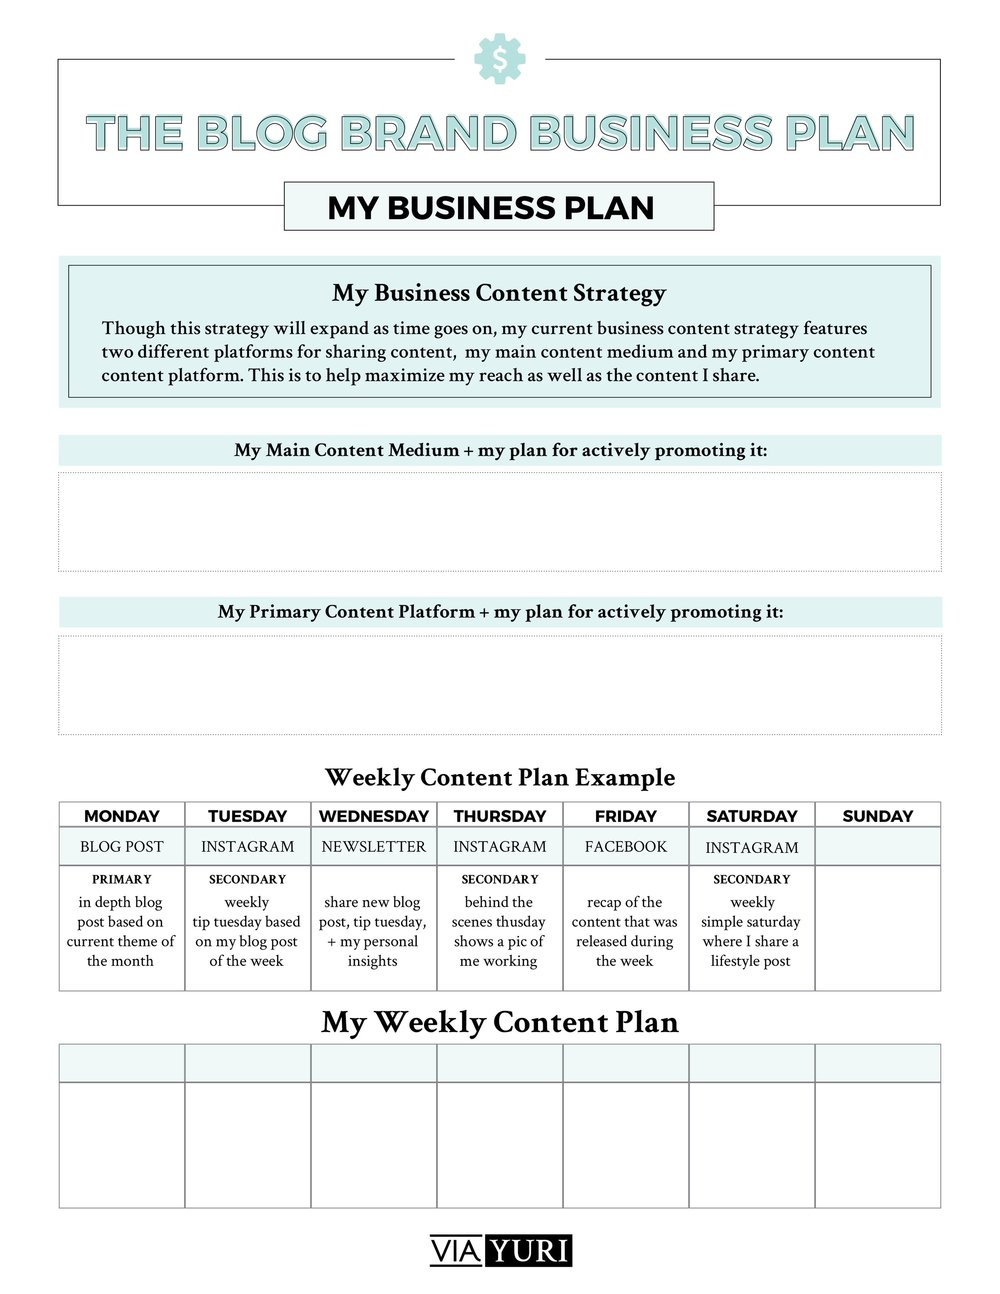 Weekly Content Plan Worksheet || The Side Hustle Quickstart Roadmap Free Course Worksheets | viaYuri.com